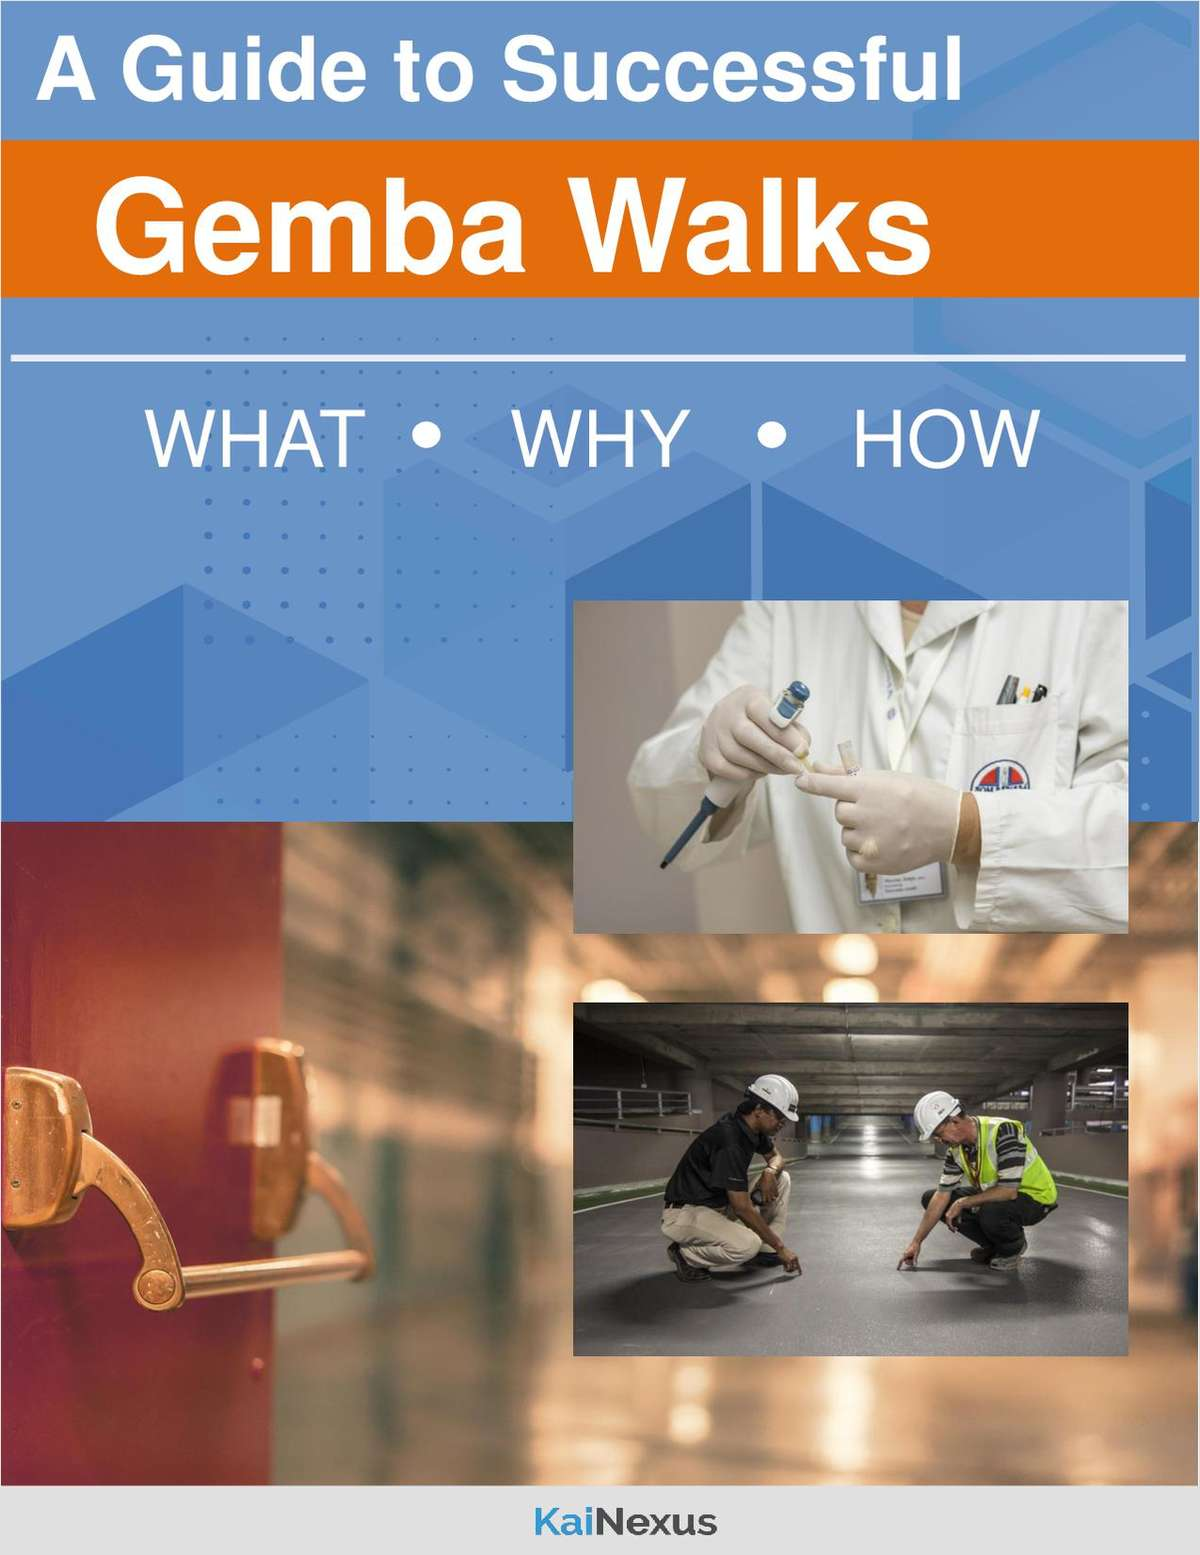 A Guide to Successful Gemba Walks